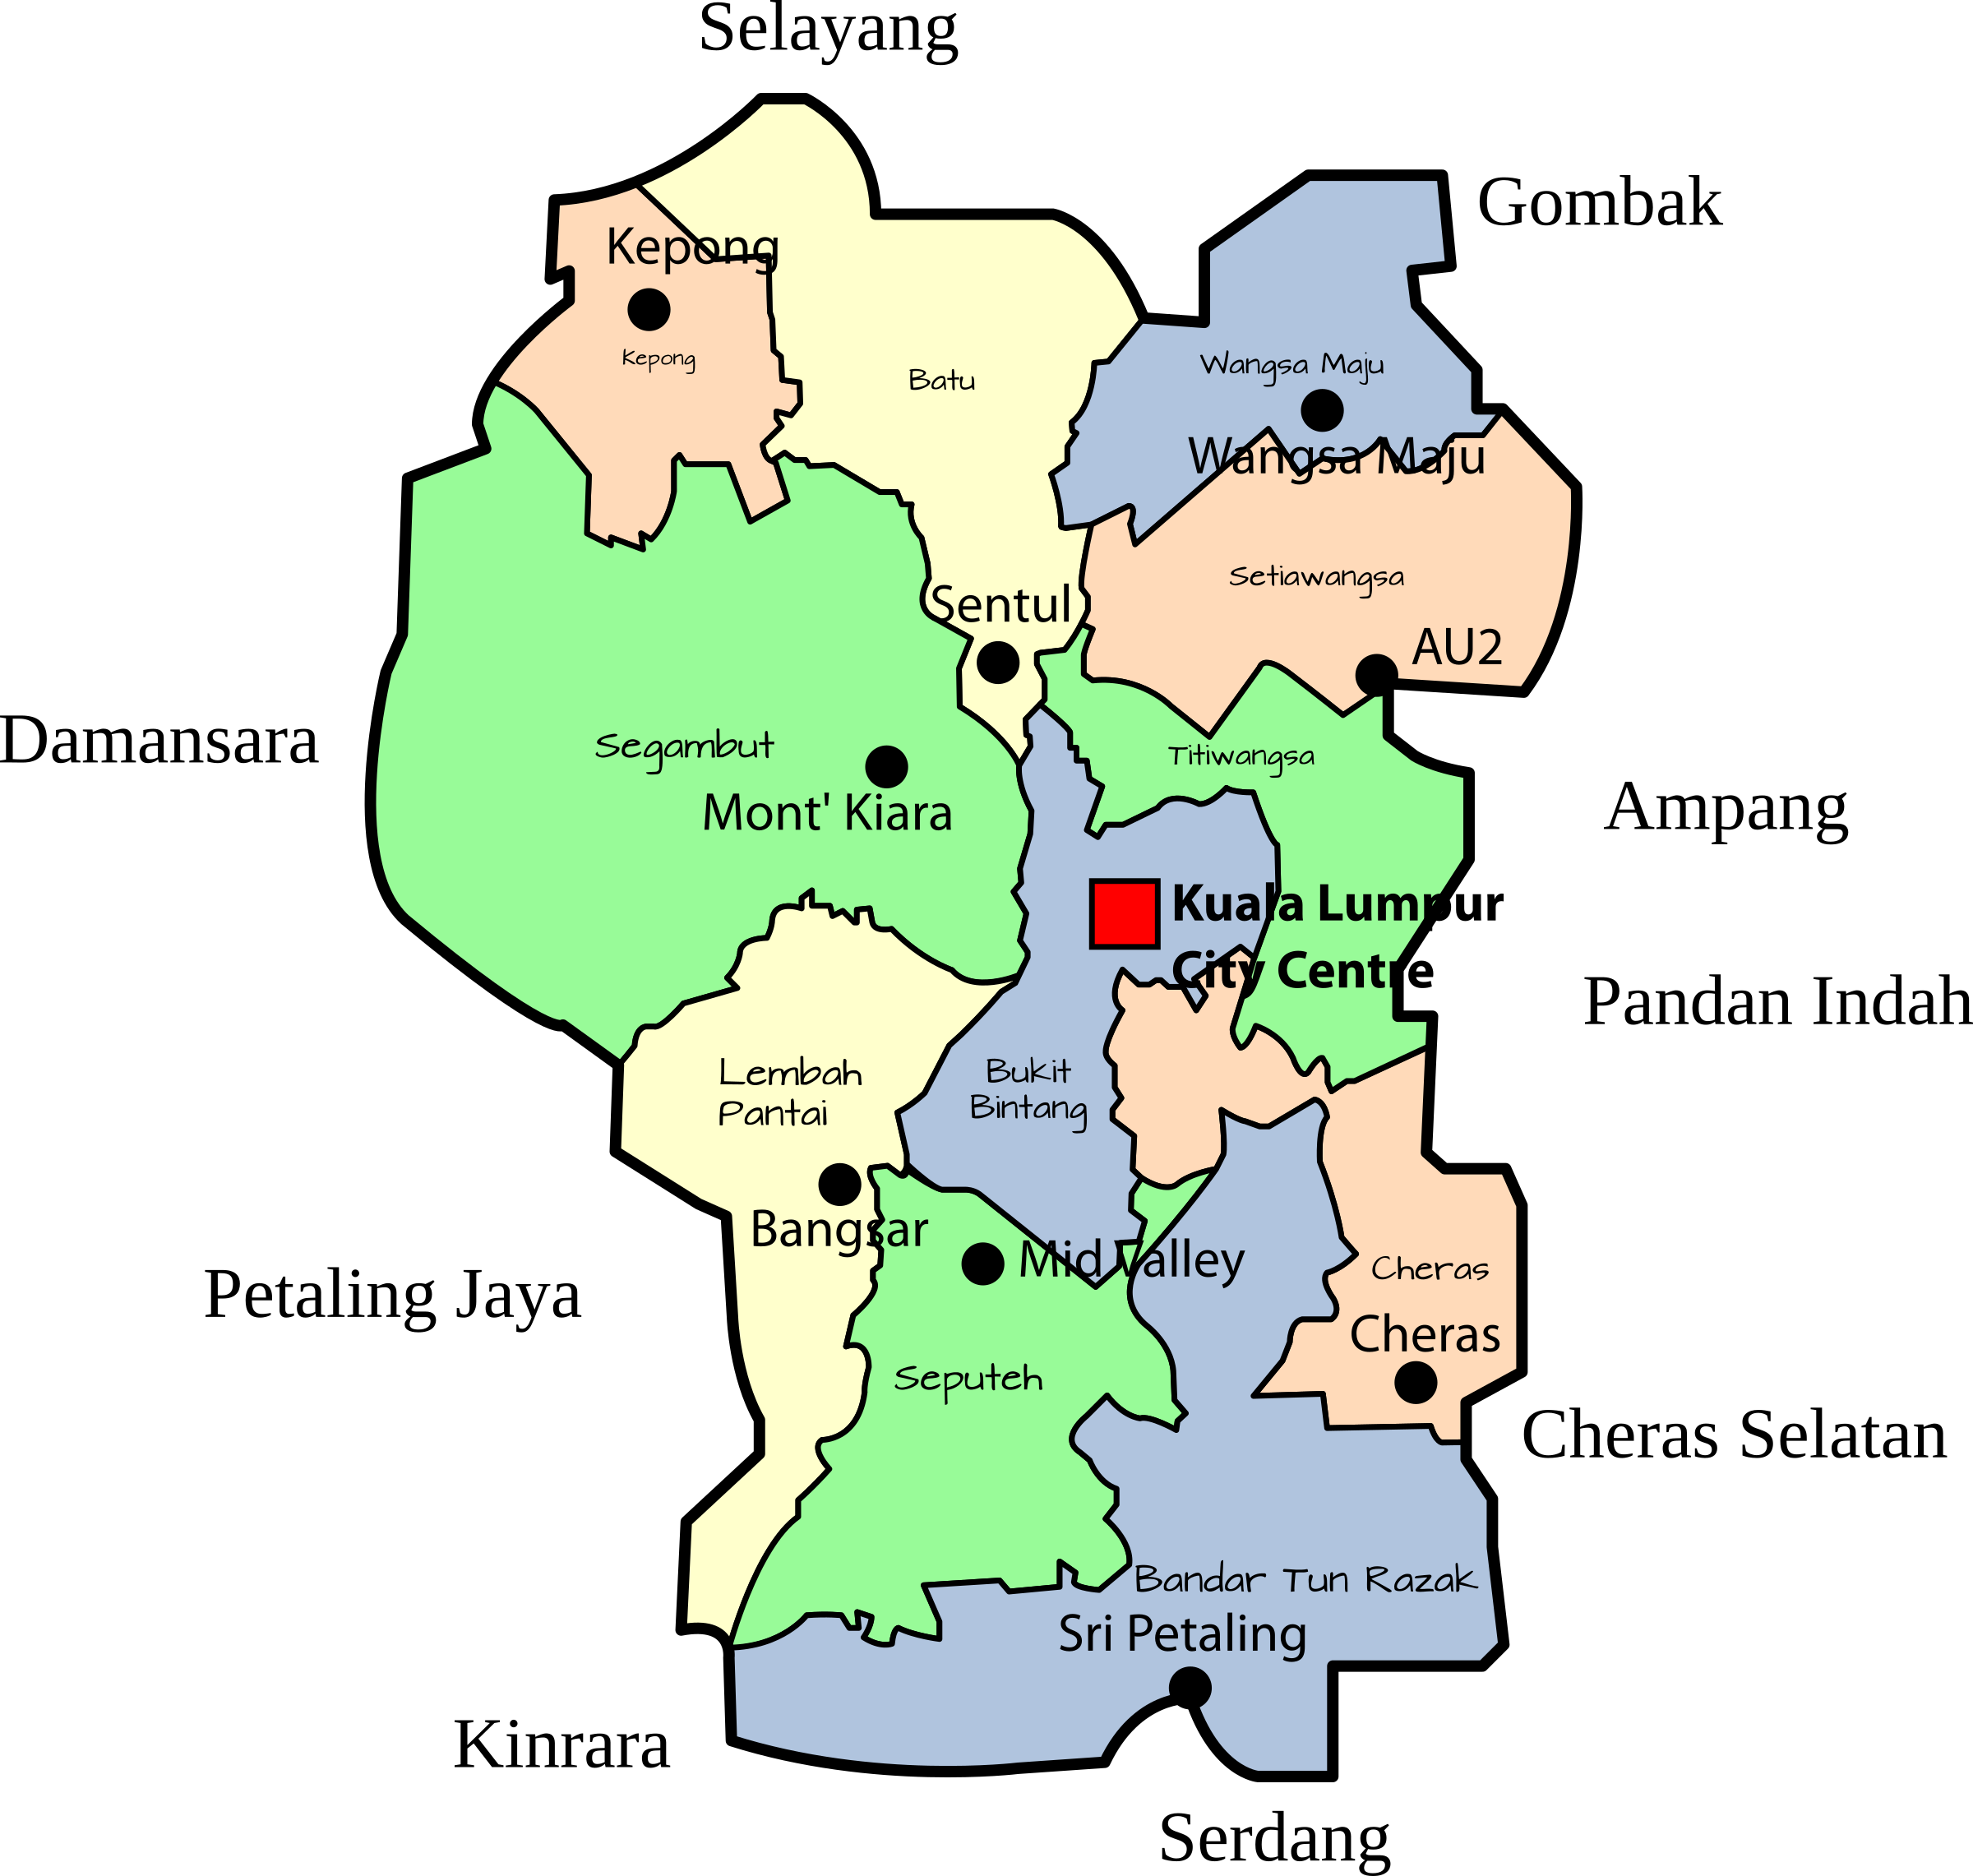 Hill clipart bukit. Parliamentary map of the